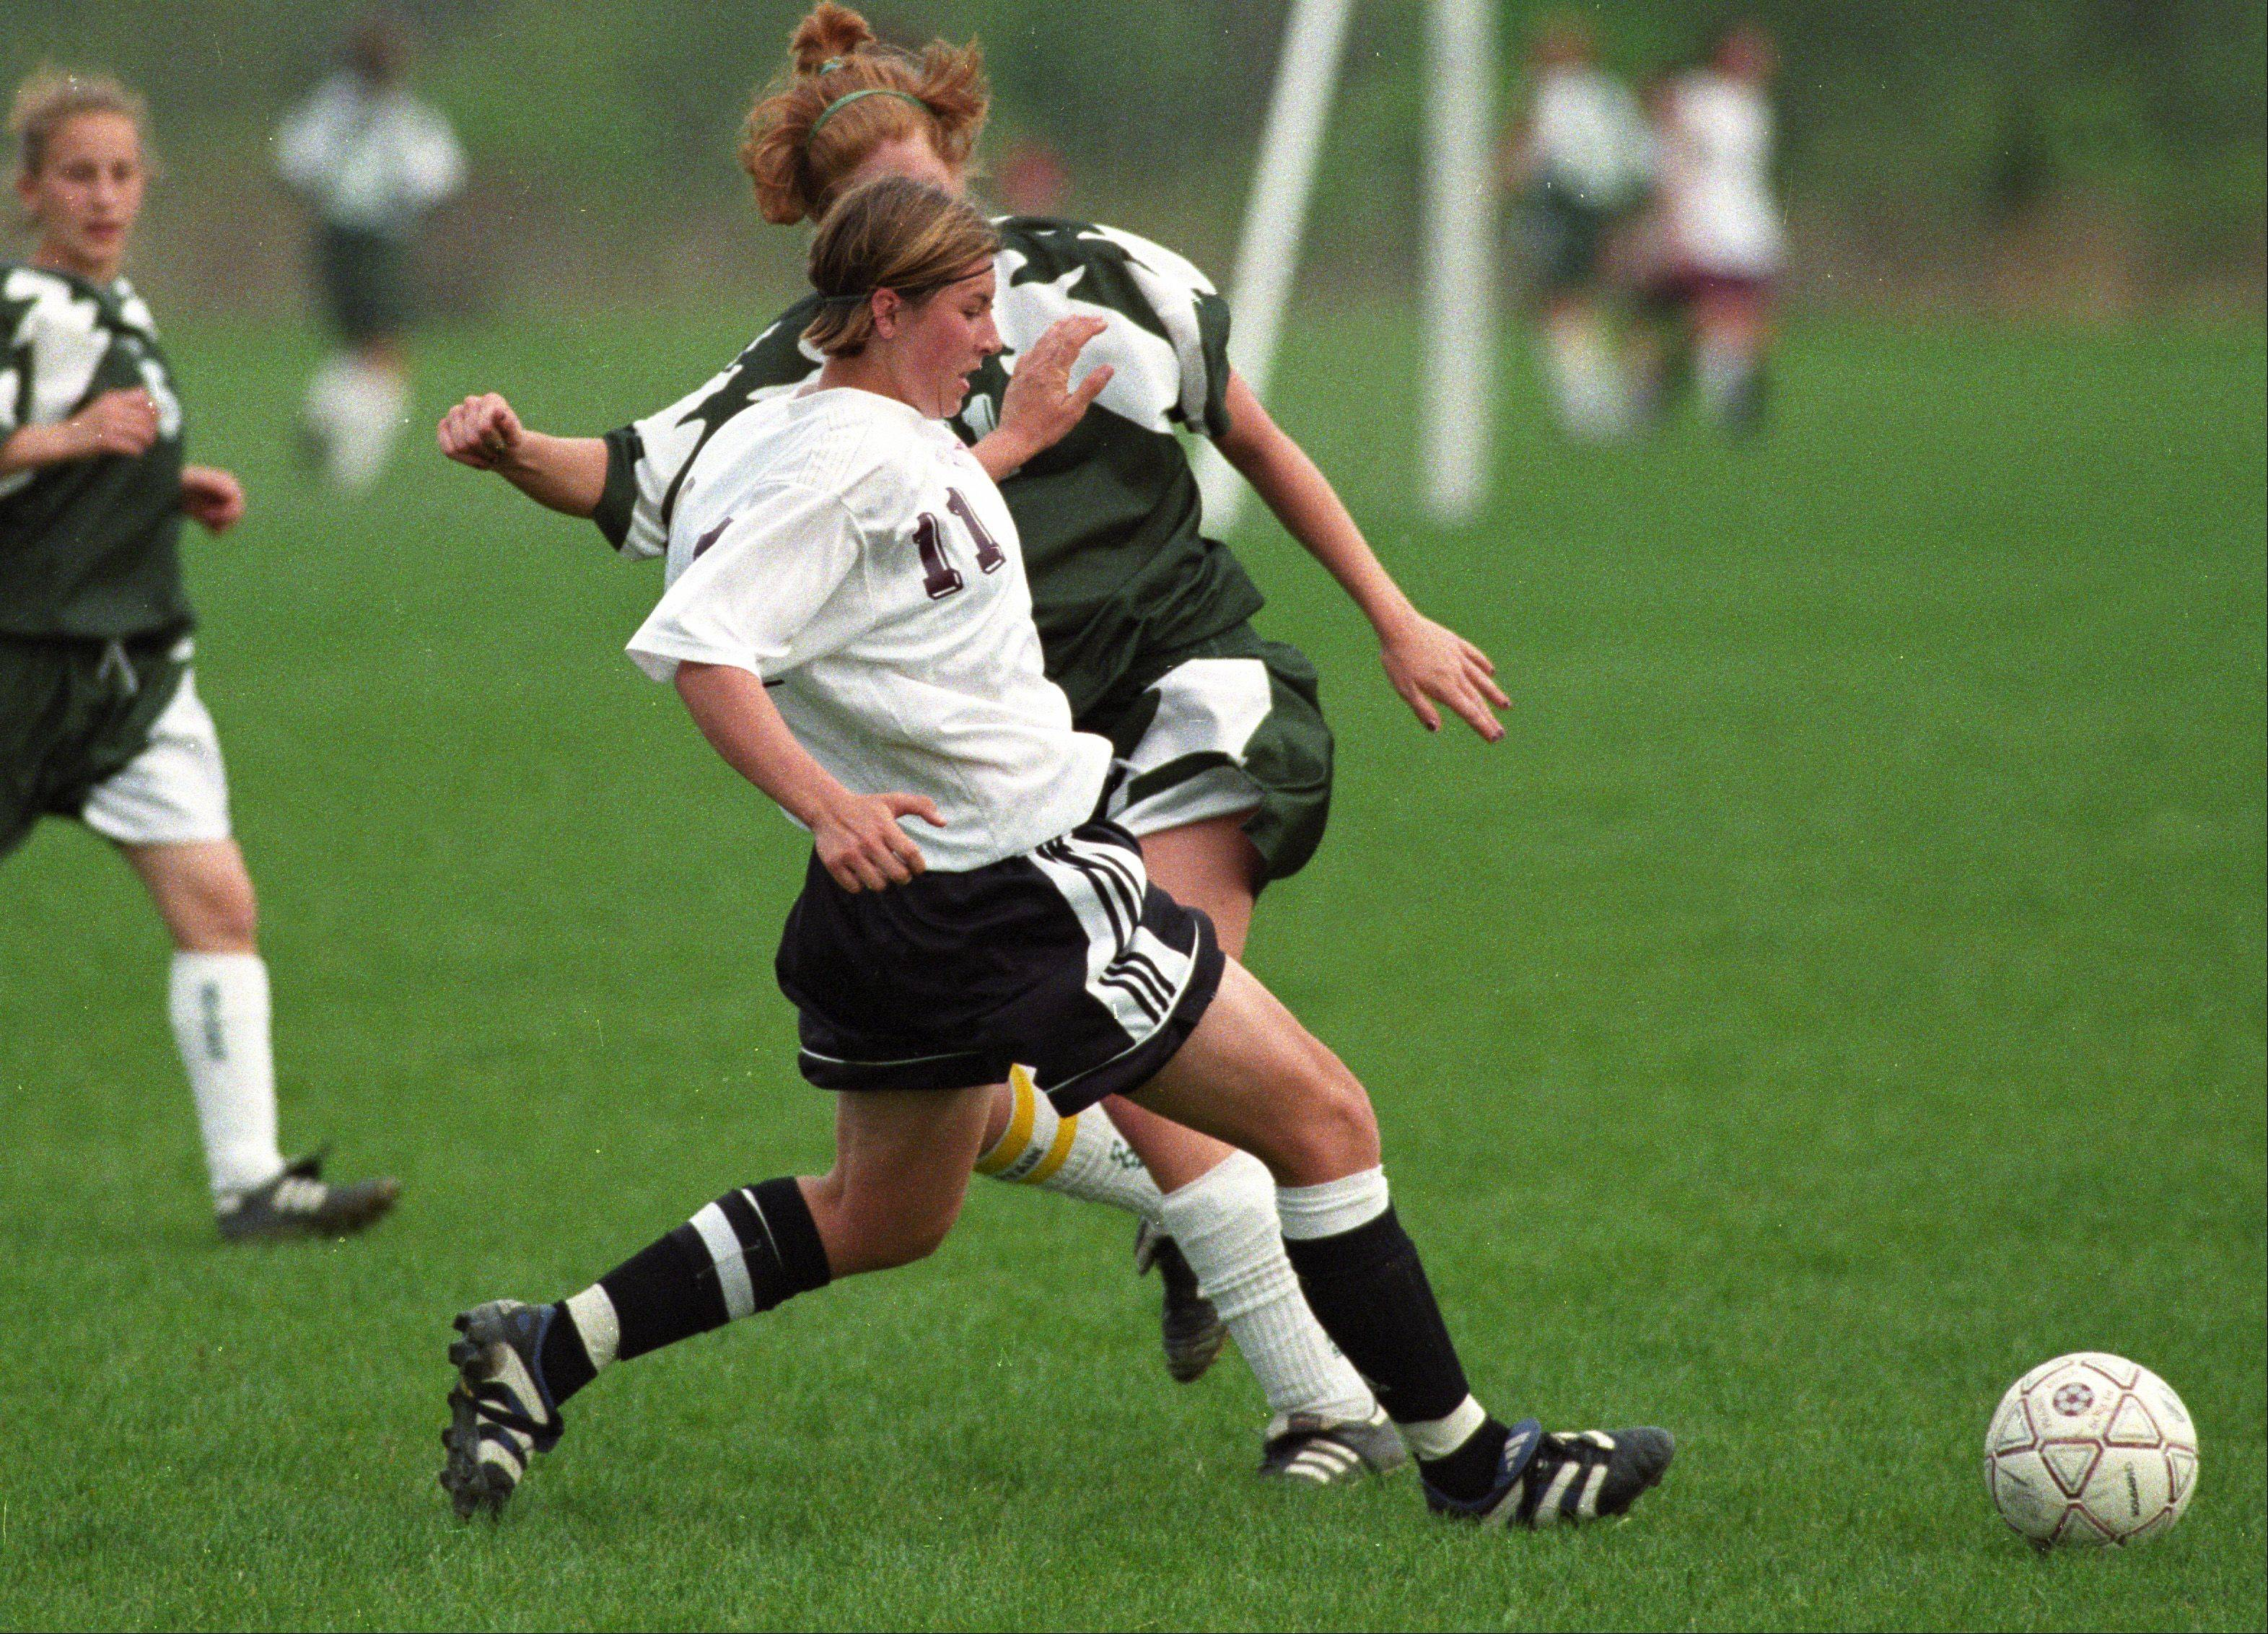 Prairie Ridge soccer standout Amy LePeilbet (11) plays during a match against Crystal Lake South in 1999. LePeilbet, of Crystal Lake, is now a defender on the U.S. Women's Soccer Team.